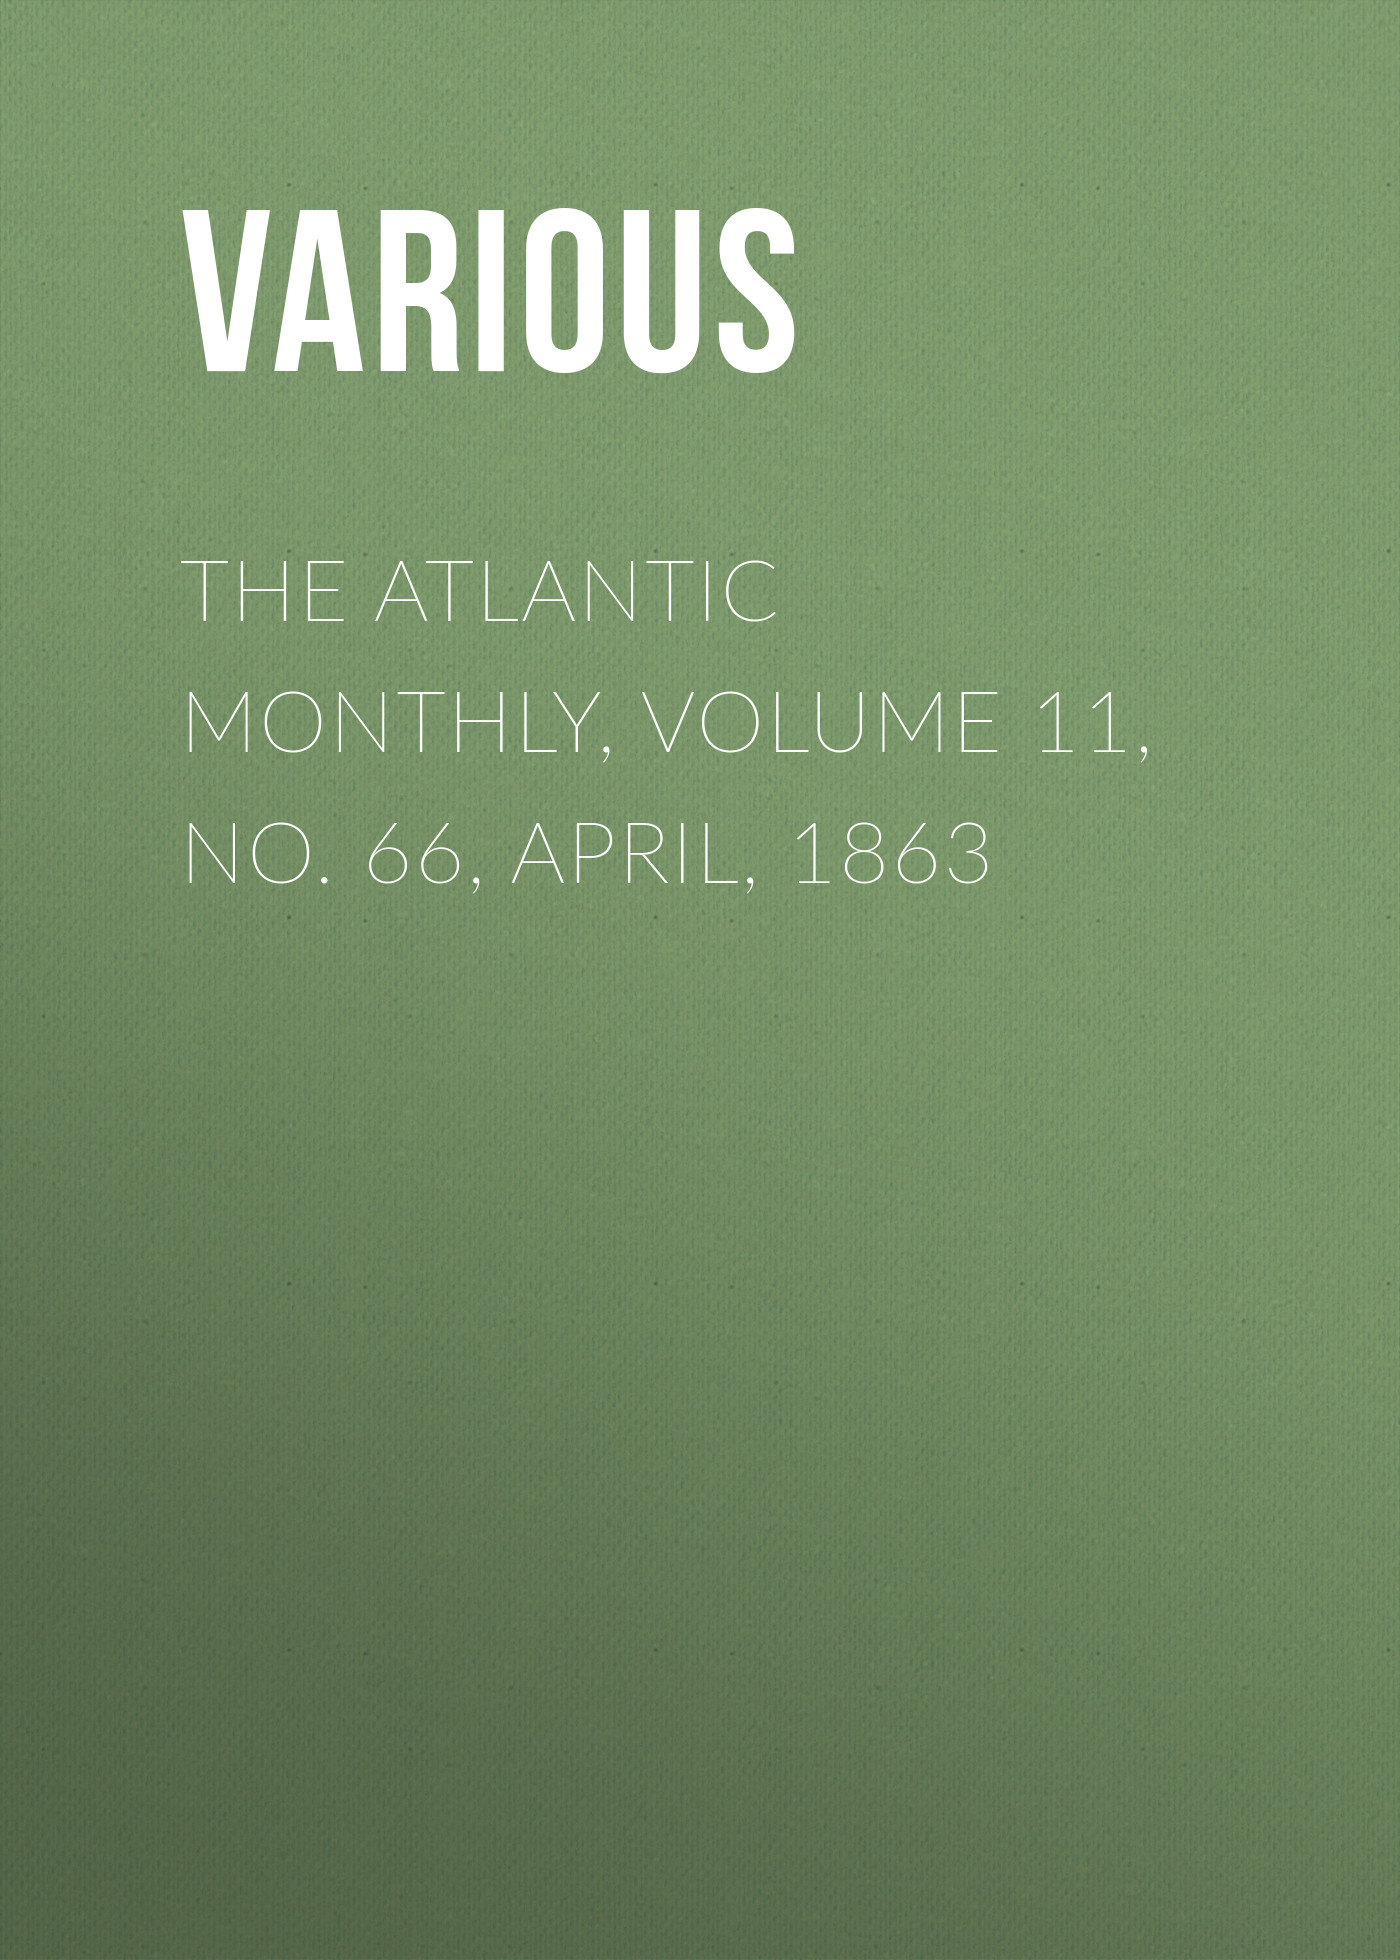 Various The Atlantic Monthly, Volume 11, No. 66, April, 1863 various the atlantic monthly volume 11 no 63 january 1863